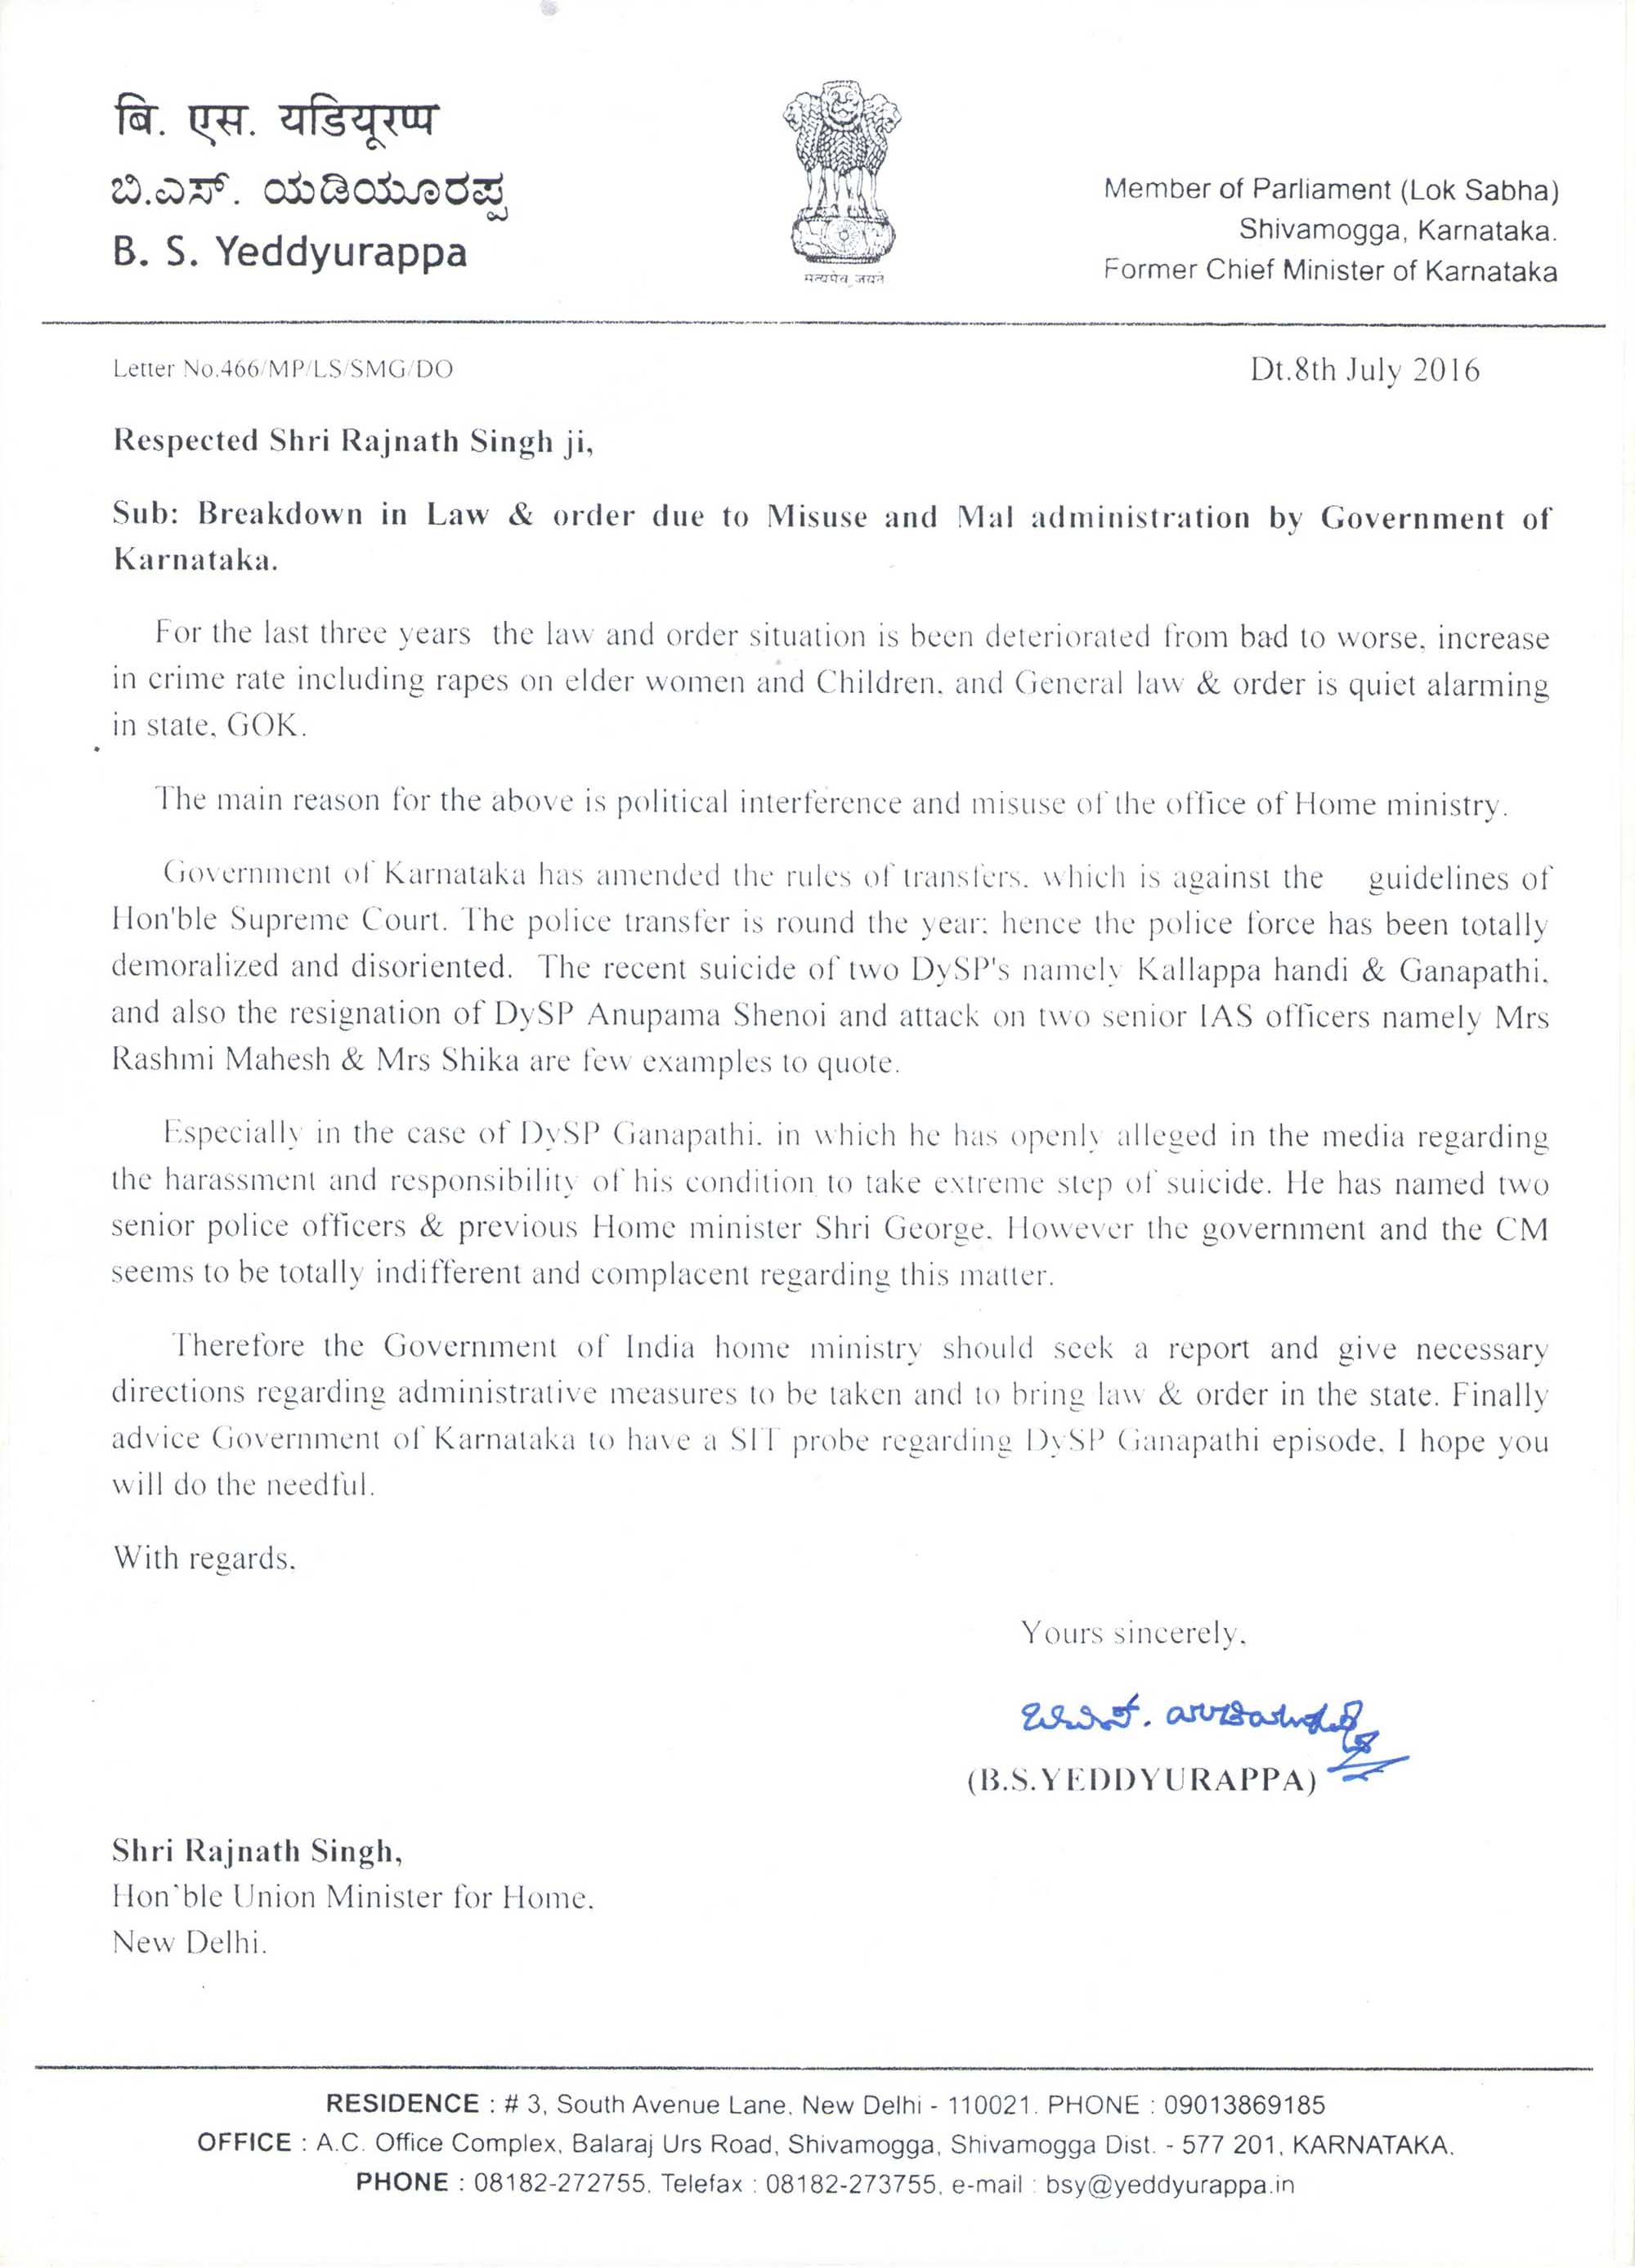 BSY Submitted Letter to Rajnath Singh 8-7-2016 1